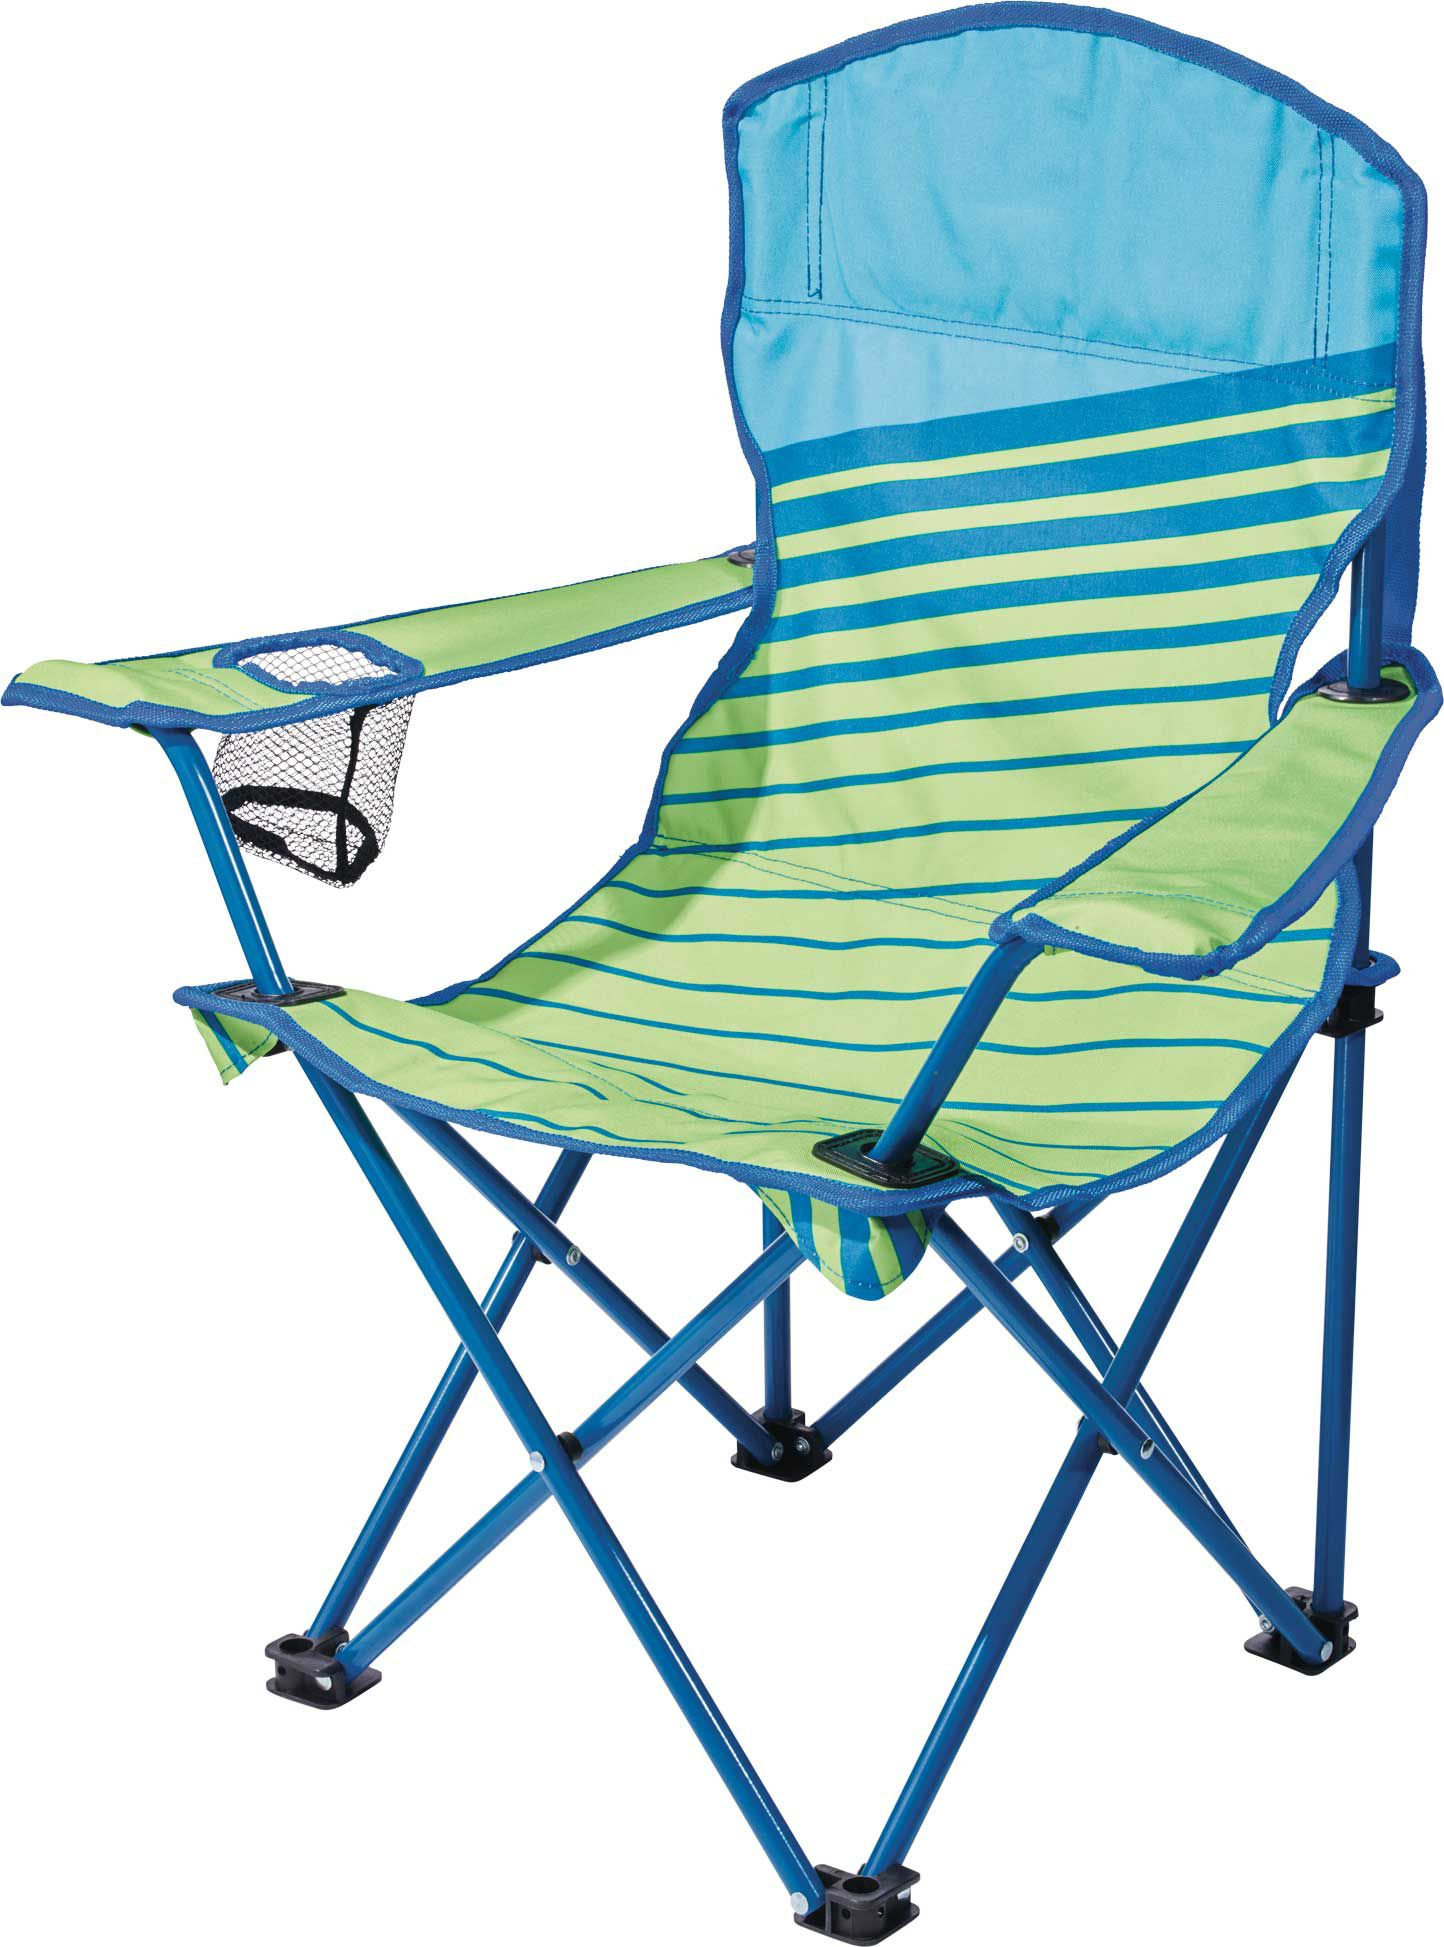 quest junior chair  dick's sporting goods - quest junior chair